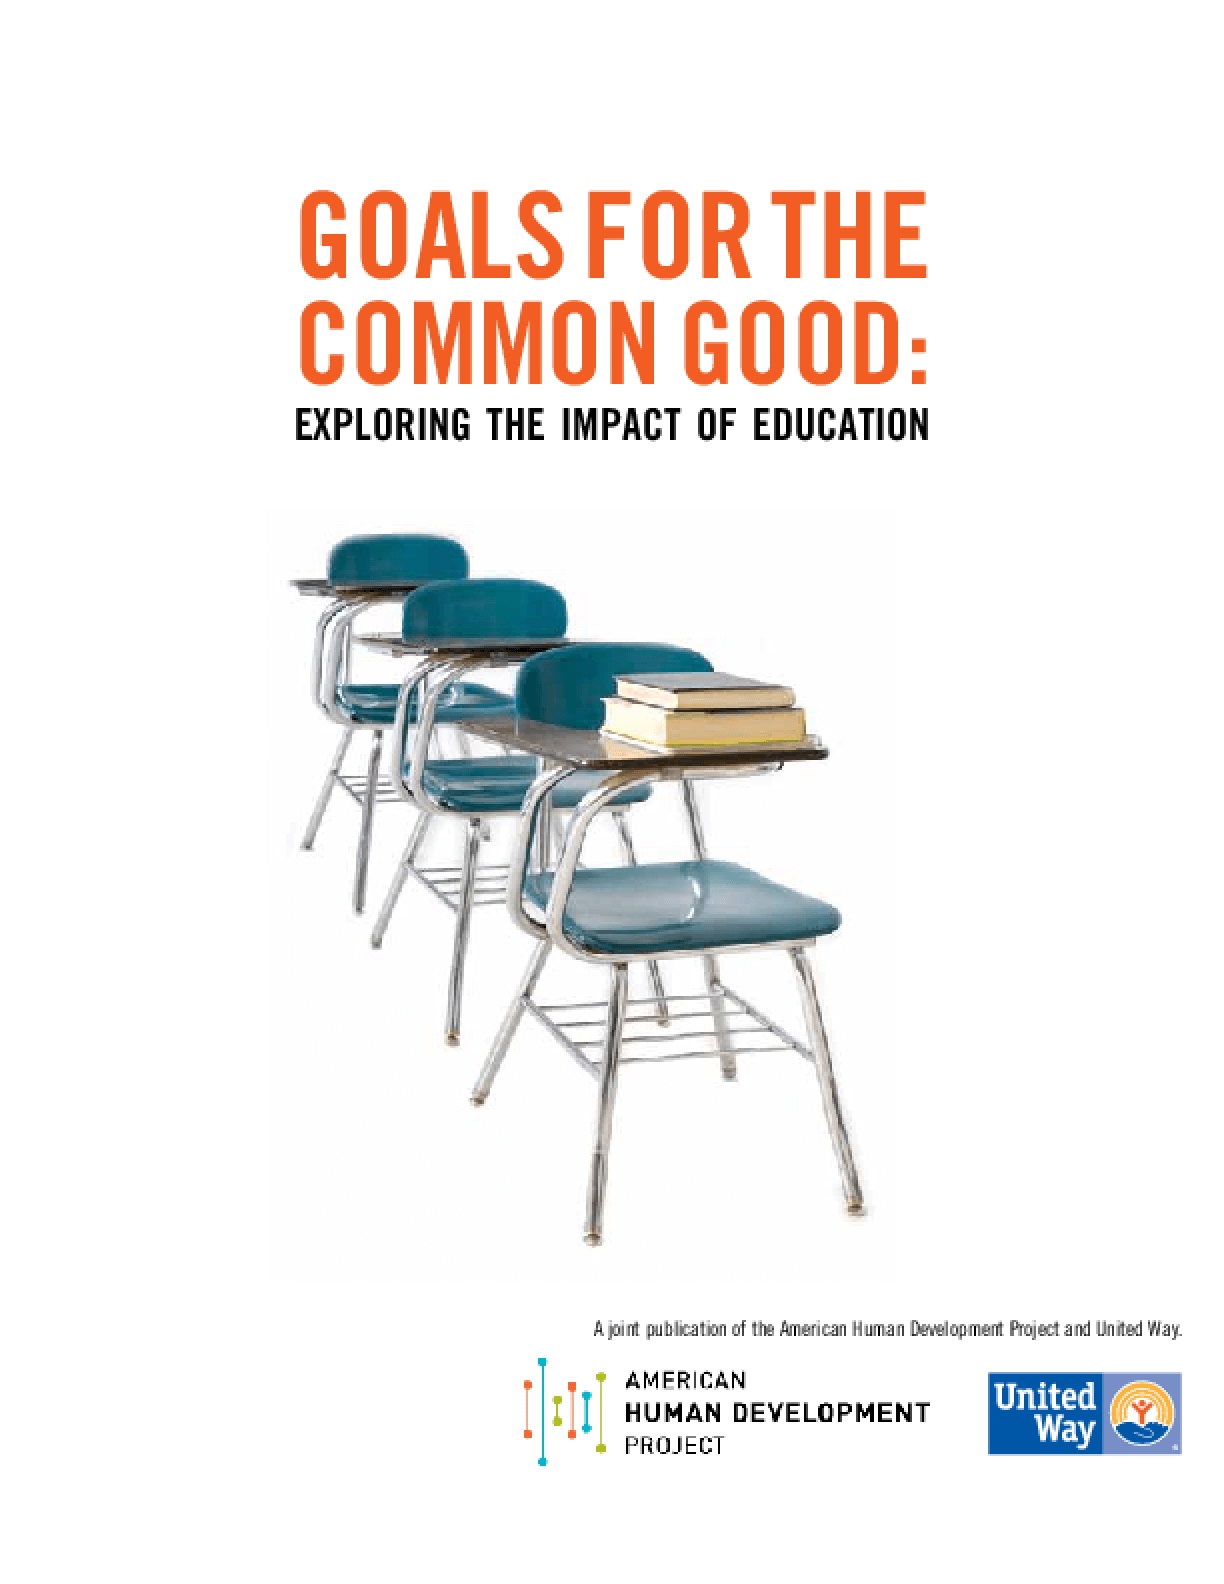 Goals for the Common Good: Exploring the Impact of Education